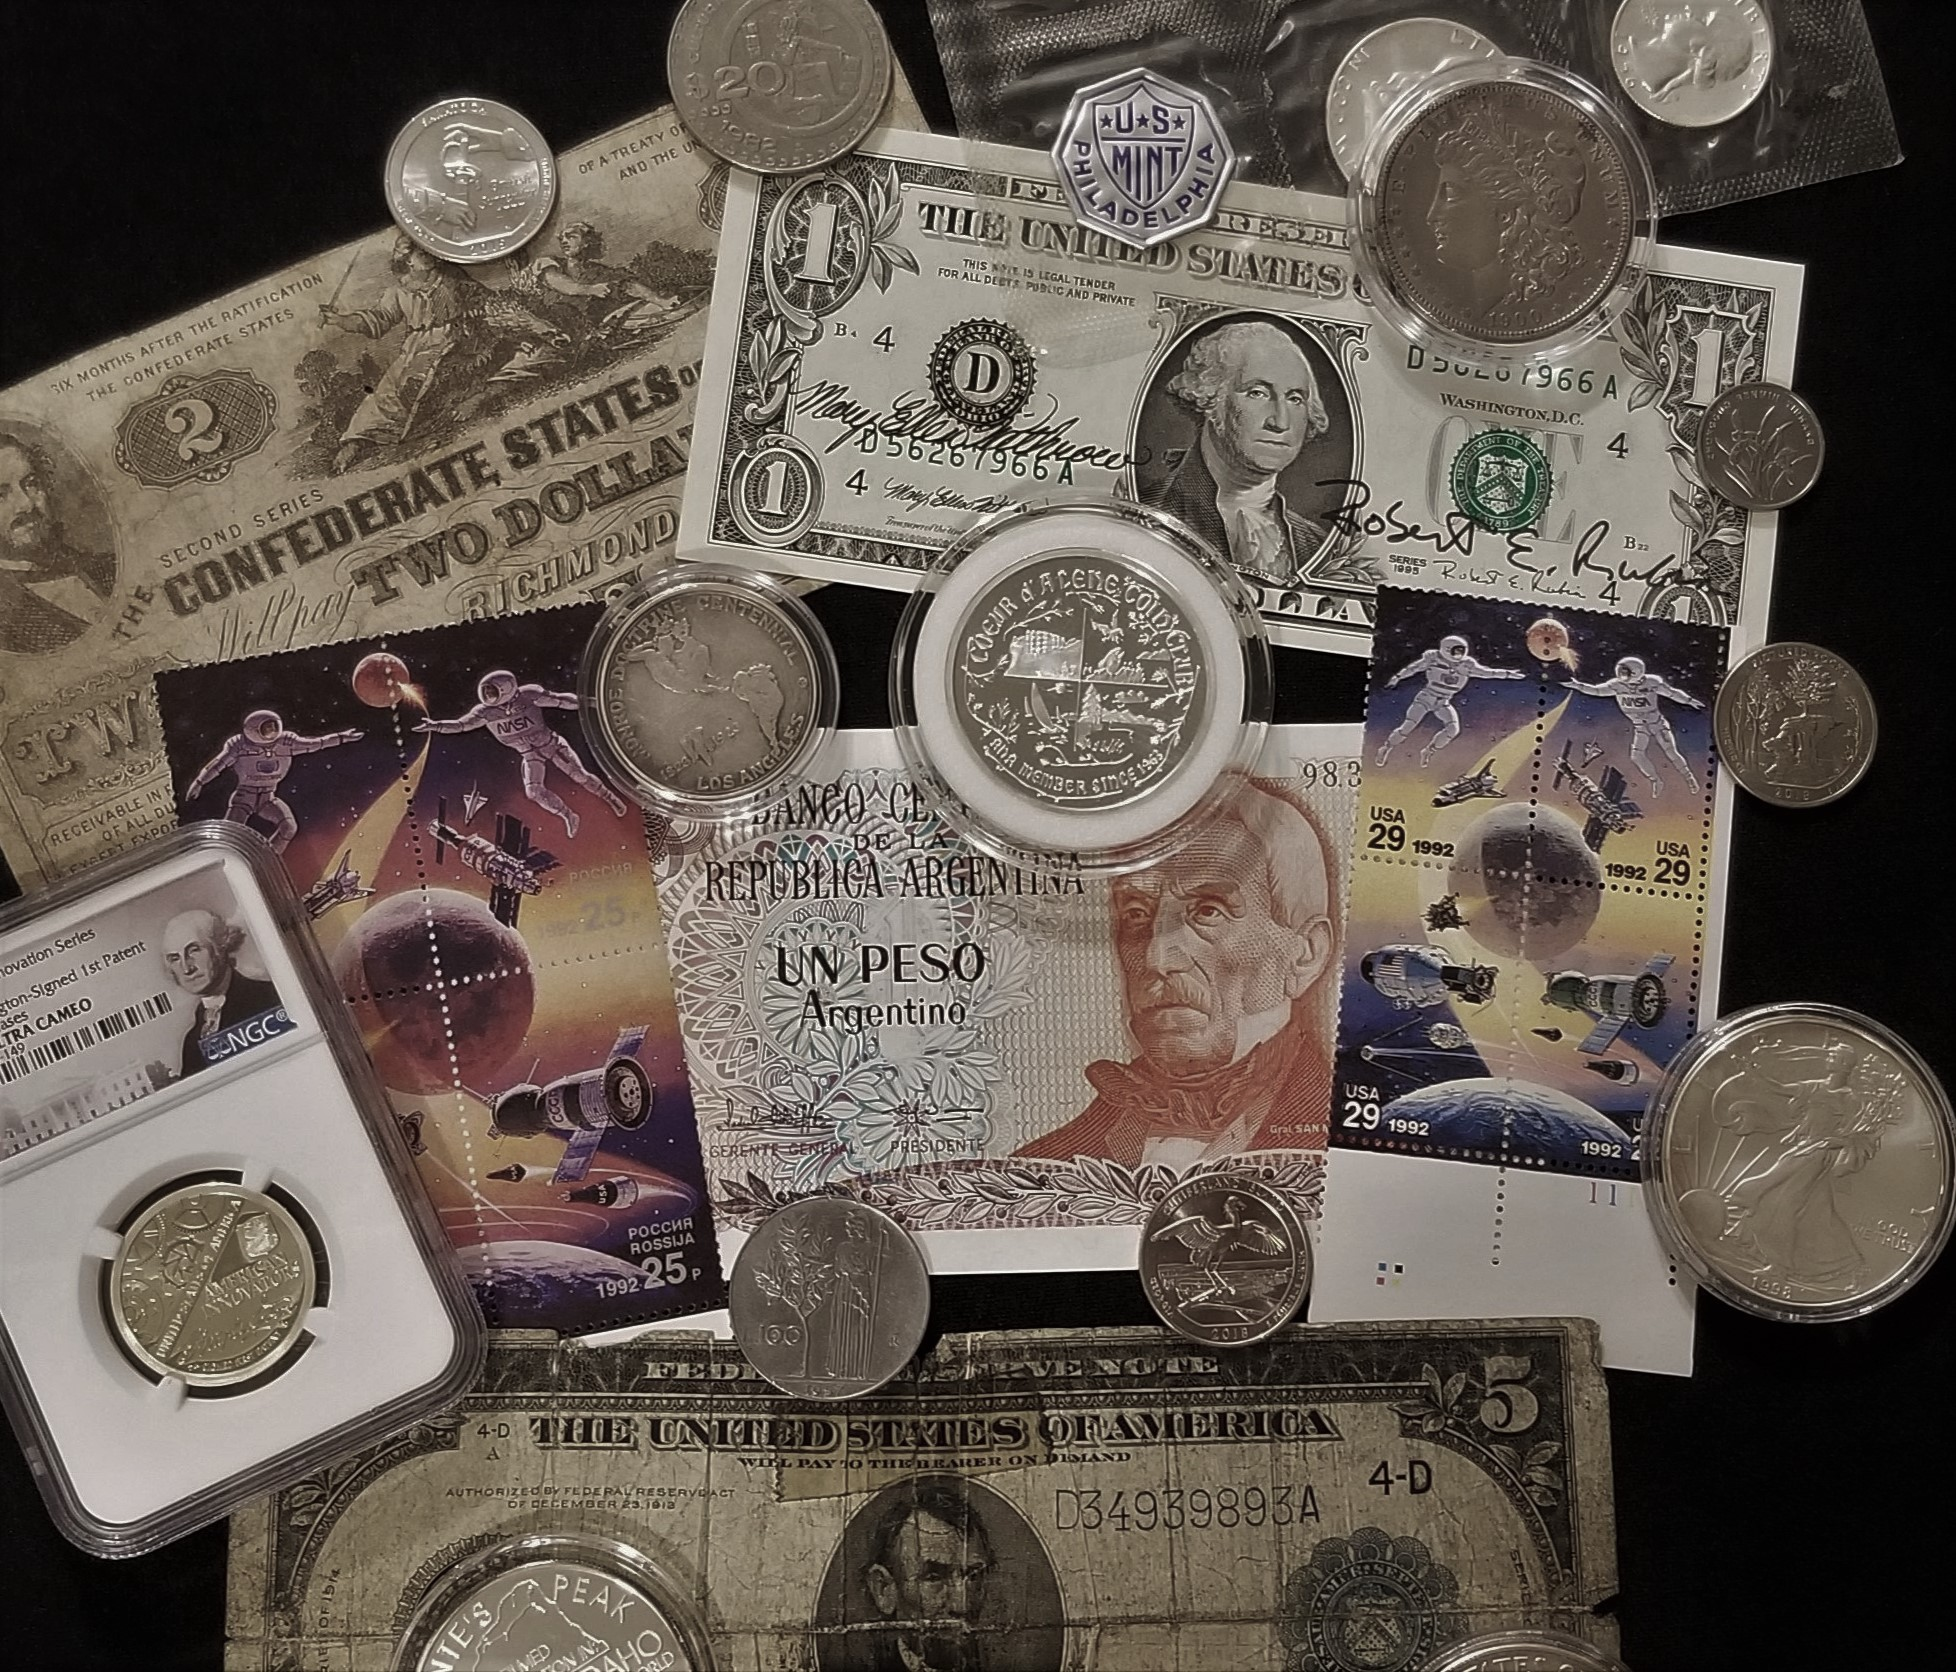 Coeur d'Alene Coin Club's 2019 Fall Coin & Collectibles Show